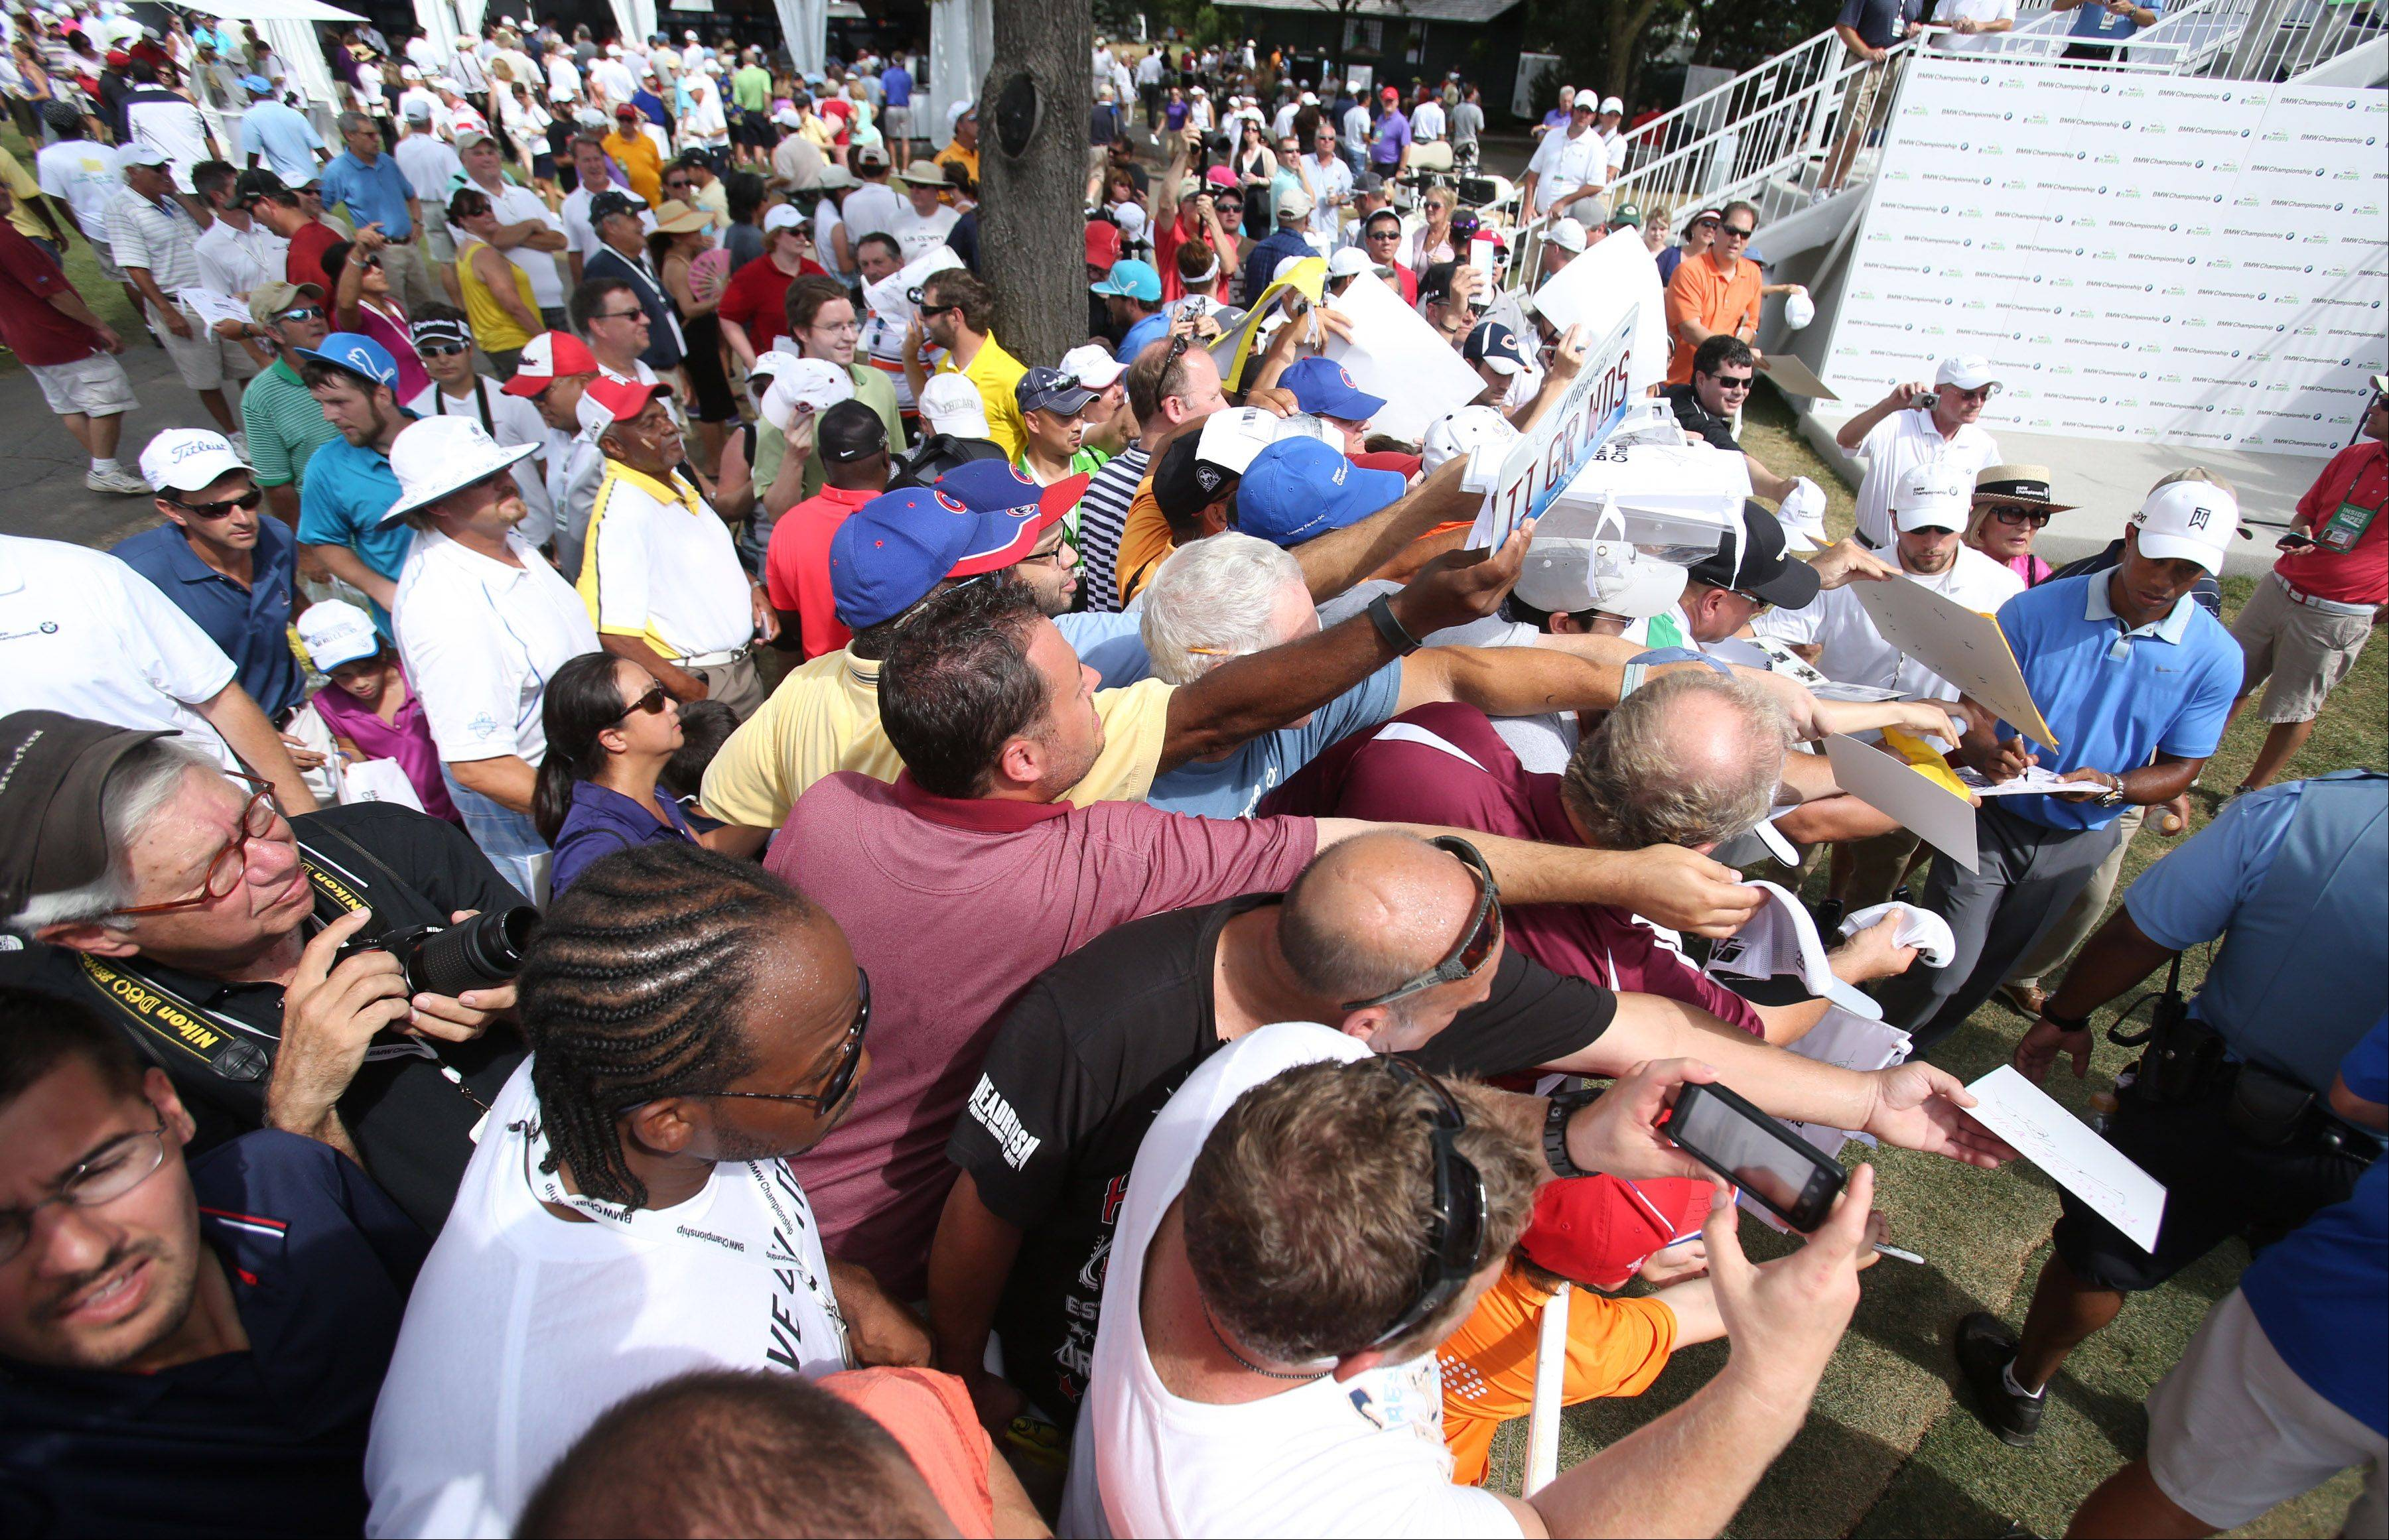 Hundreds of fans try to get Tiger Woods' autograph after a press conference.